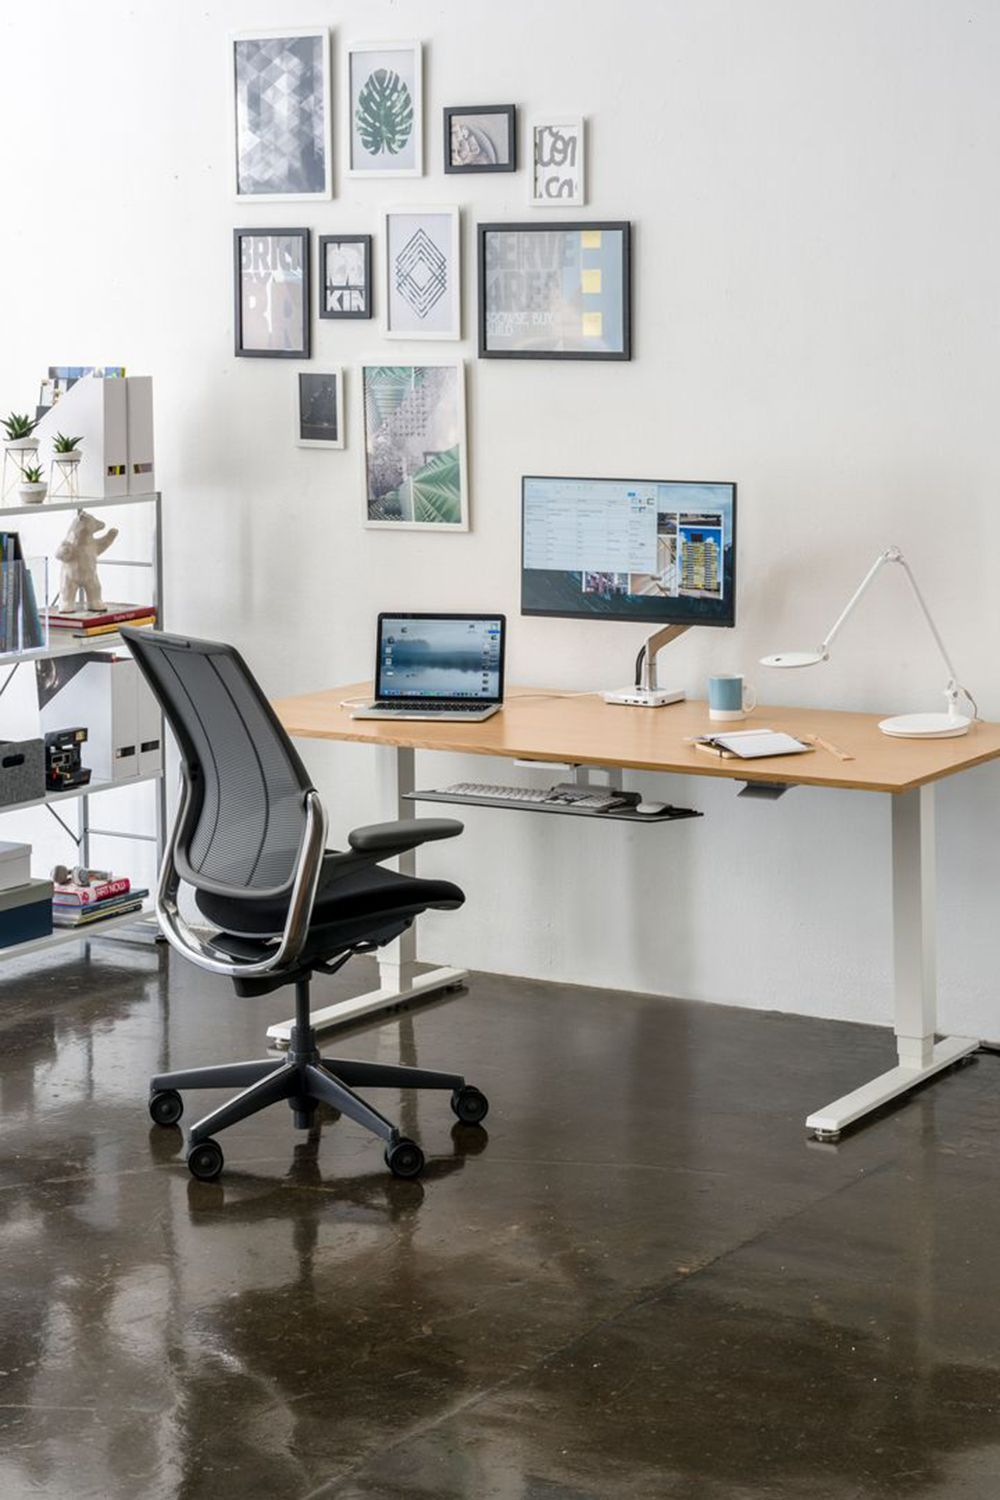 Say Hello To Our New Brand Partner Human Scale They Specialize In Designing Ergonomic And Sustainable Office Chairs With In 2020 Home Home Office Design Home Office